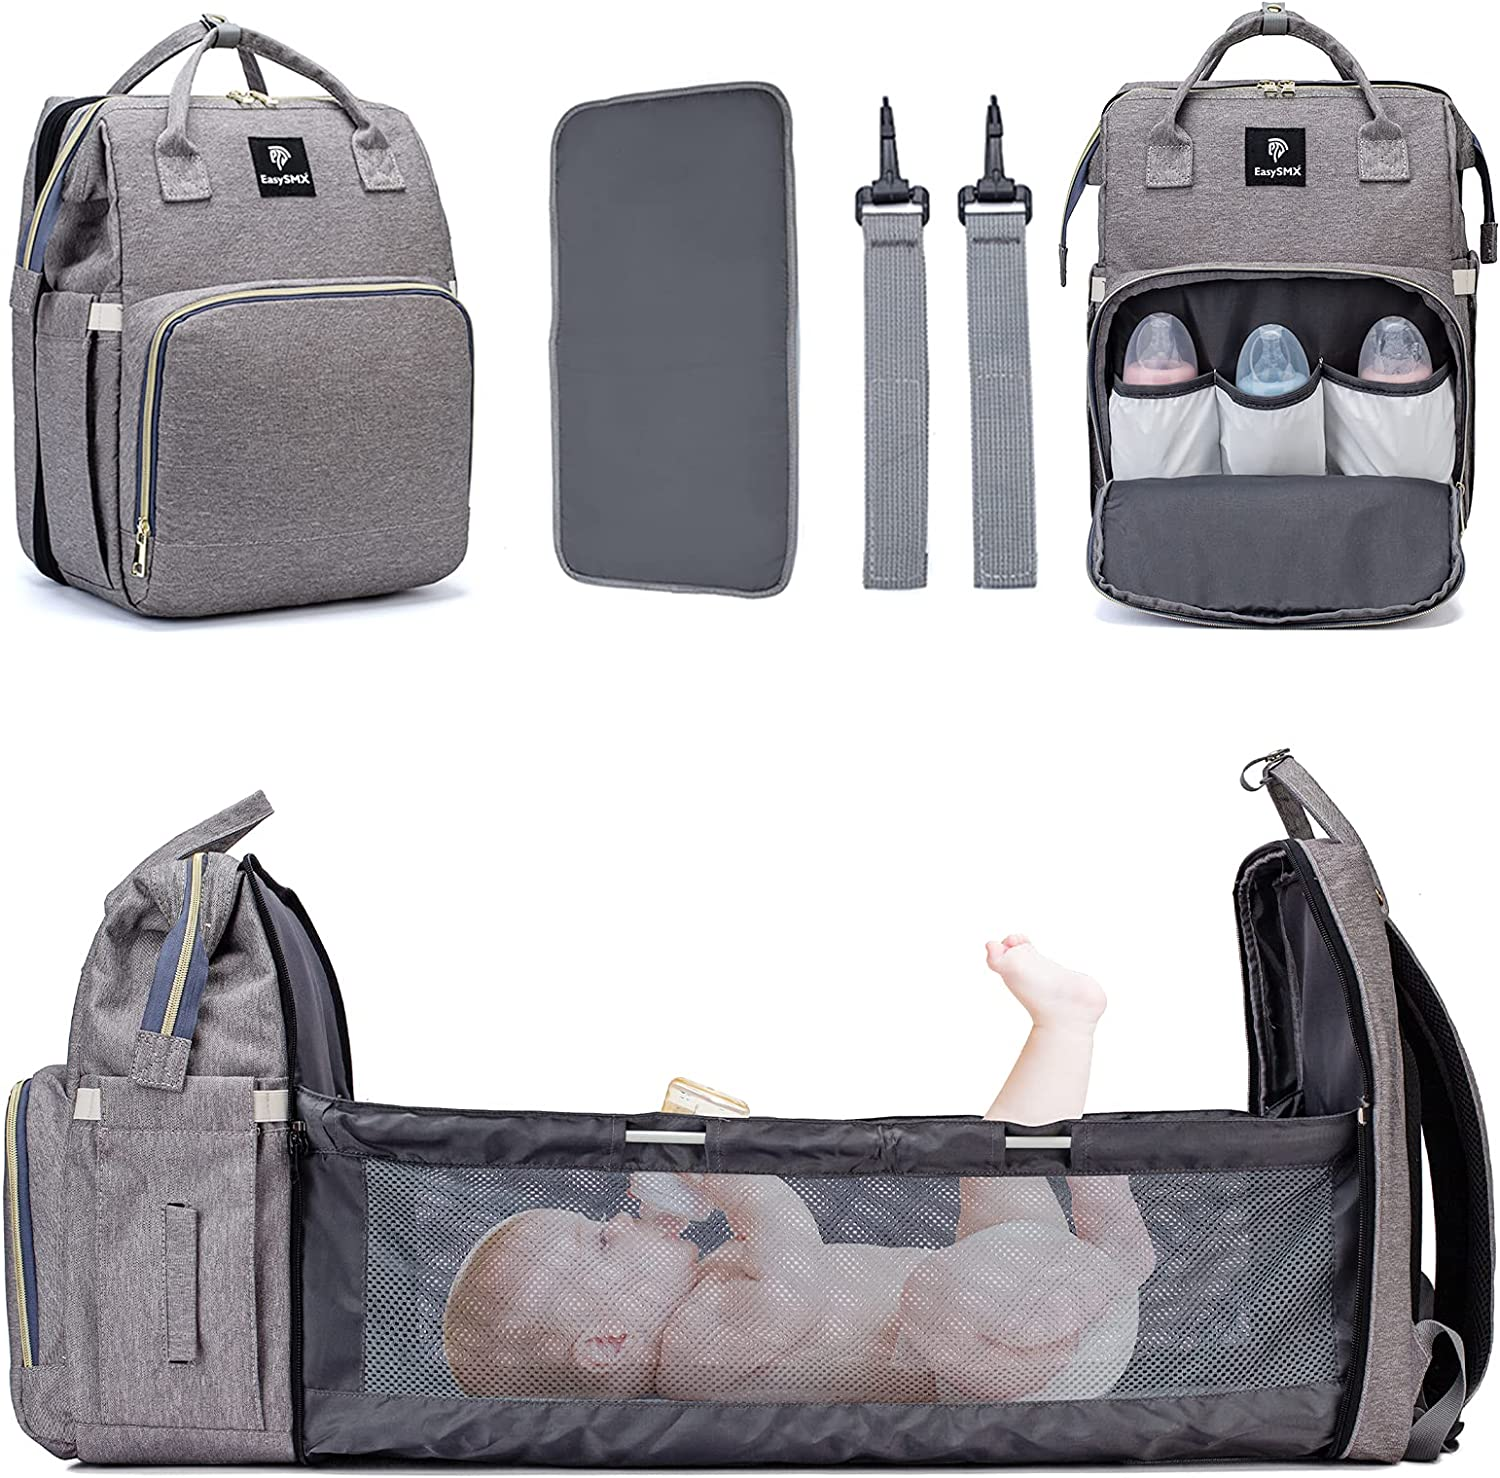 3 in 1 Baby Travel Diaper Bag Backpack with Changing Station, Portable Travel Backpack Diaper Bags for Baby Boy & Girl, Waterproof Baby Bags for Boys Large Capacity Heat Preservation Grey